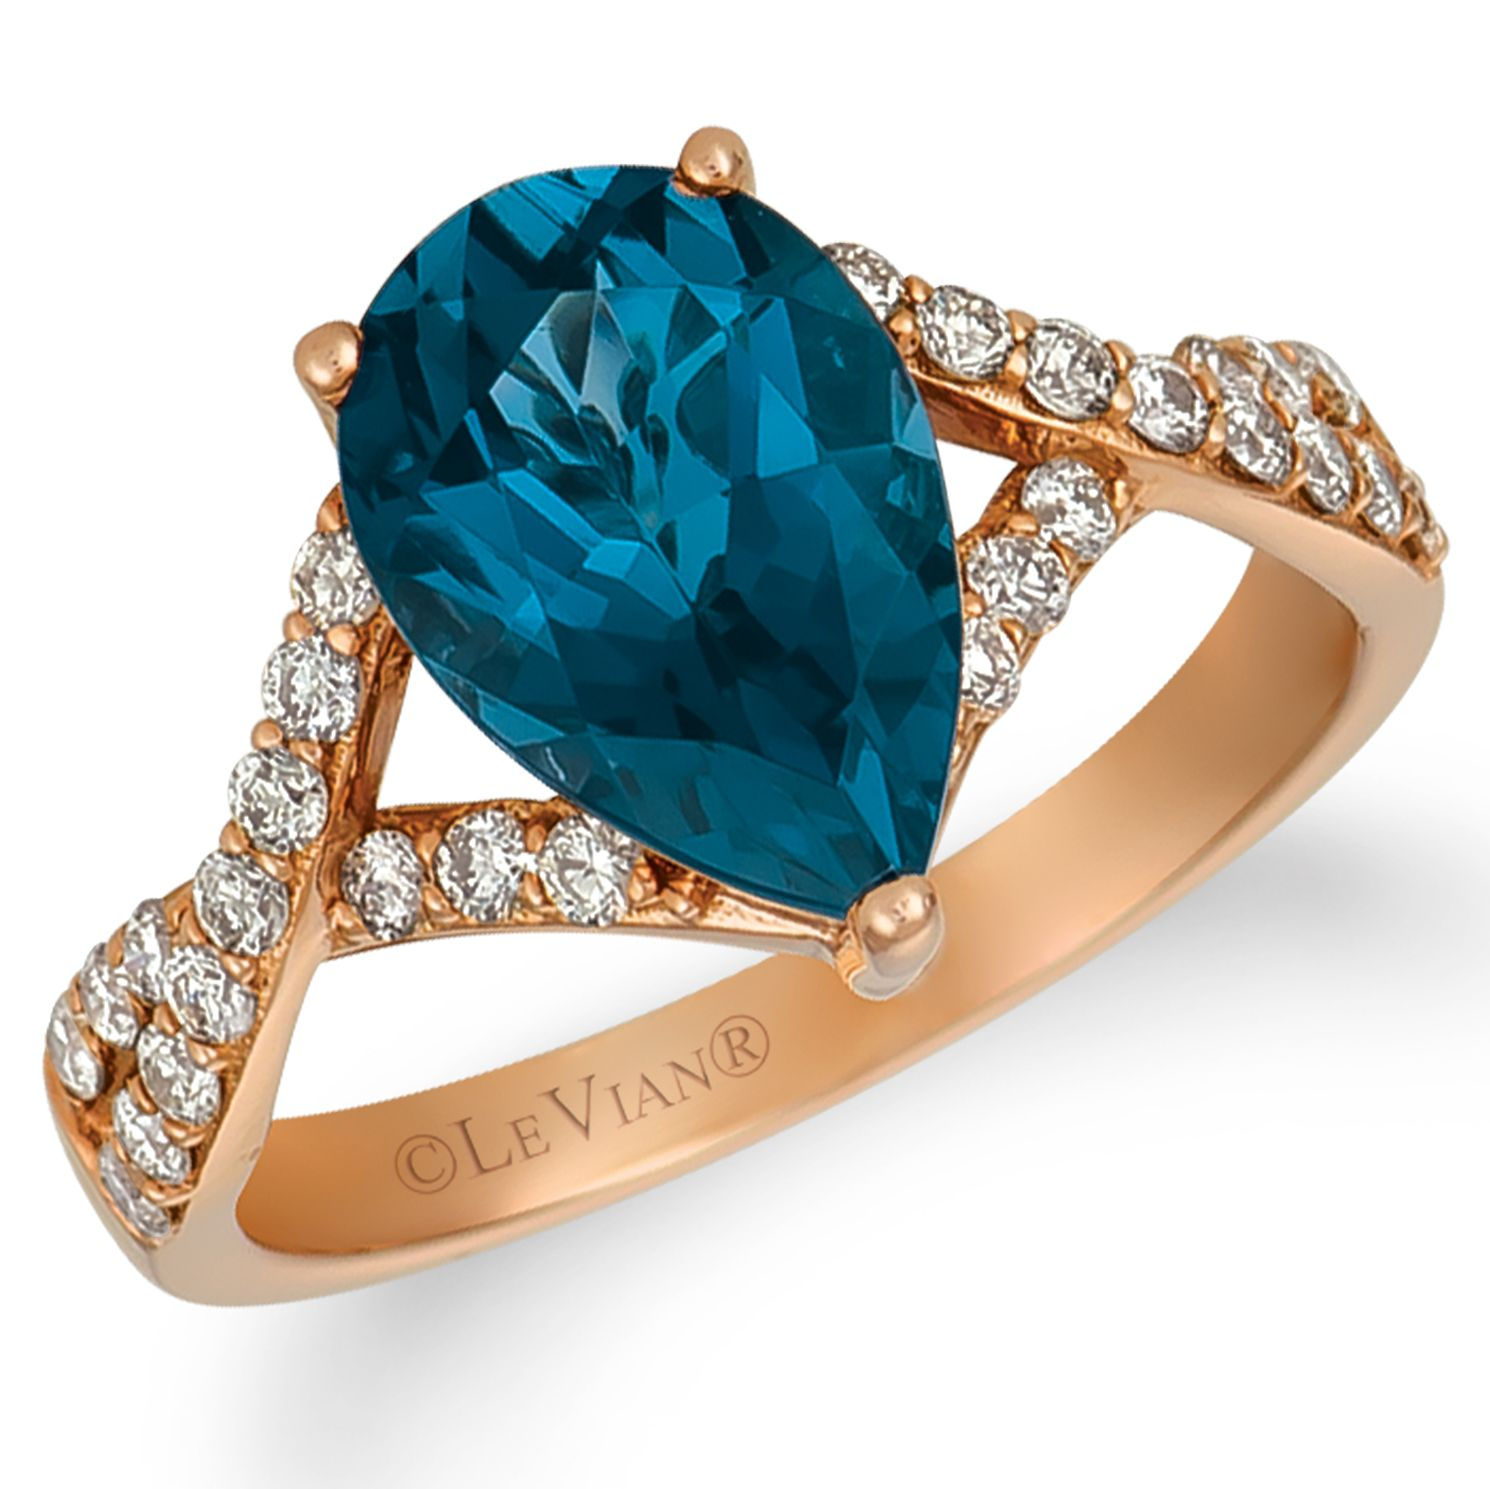 Le Vian 14ct Strawberry Gold Blue Topaz & Nude Diamond Ring - Product number 4283775